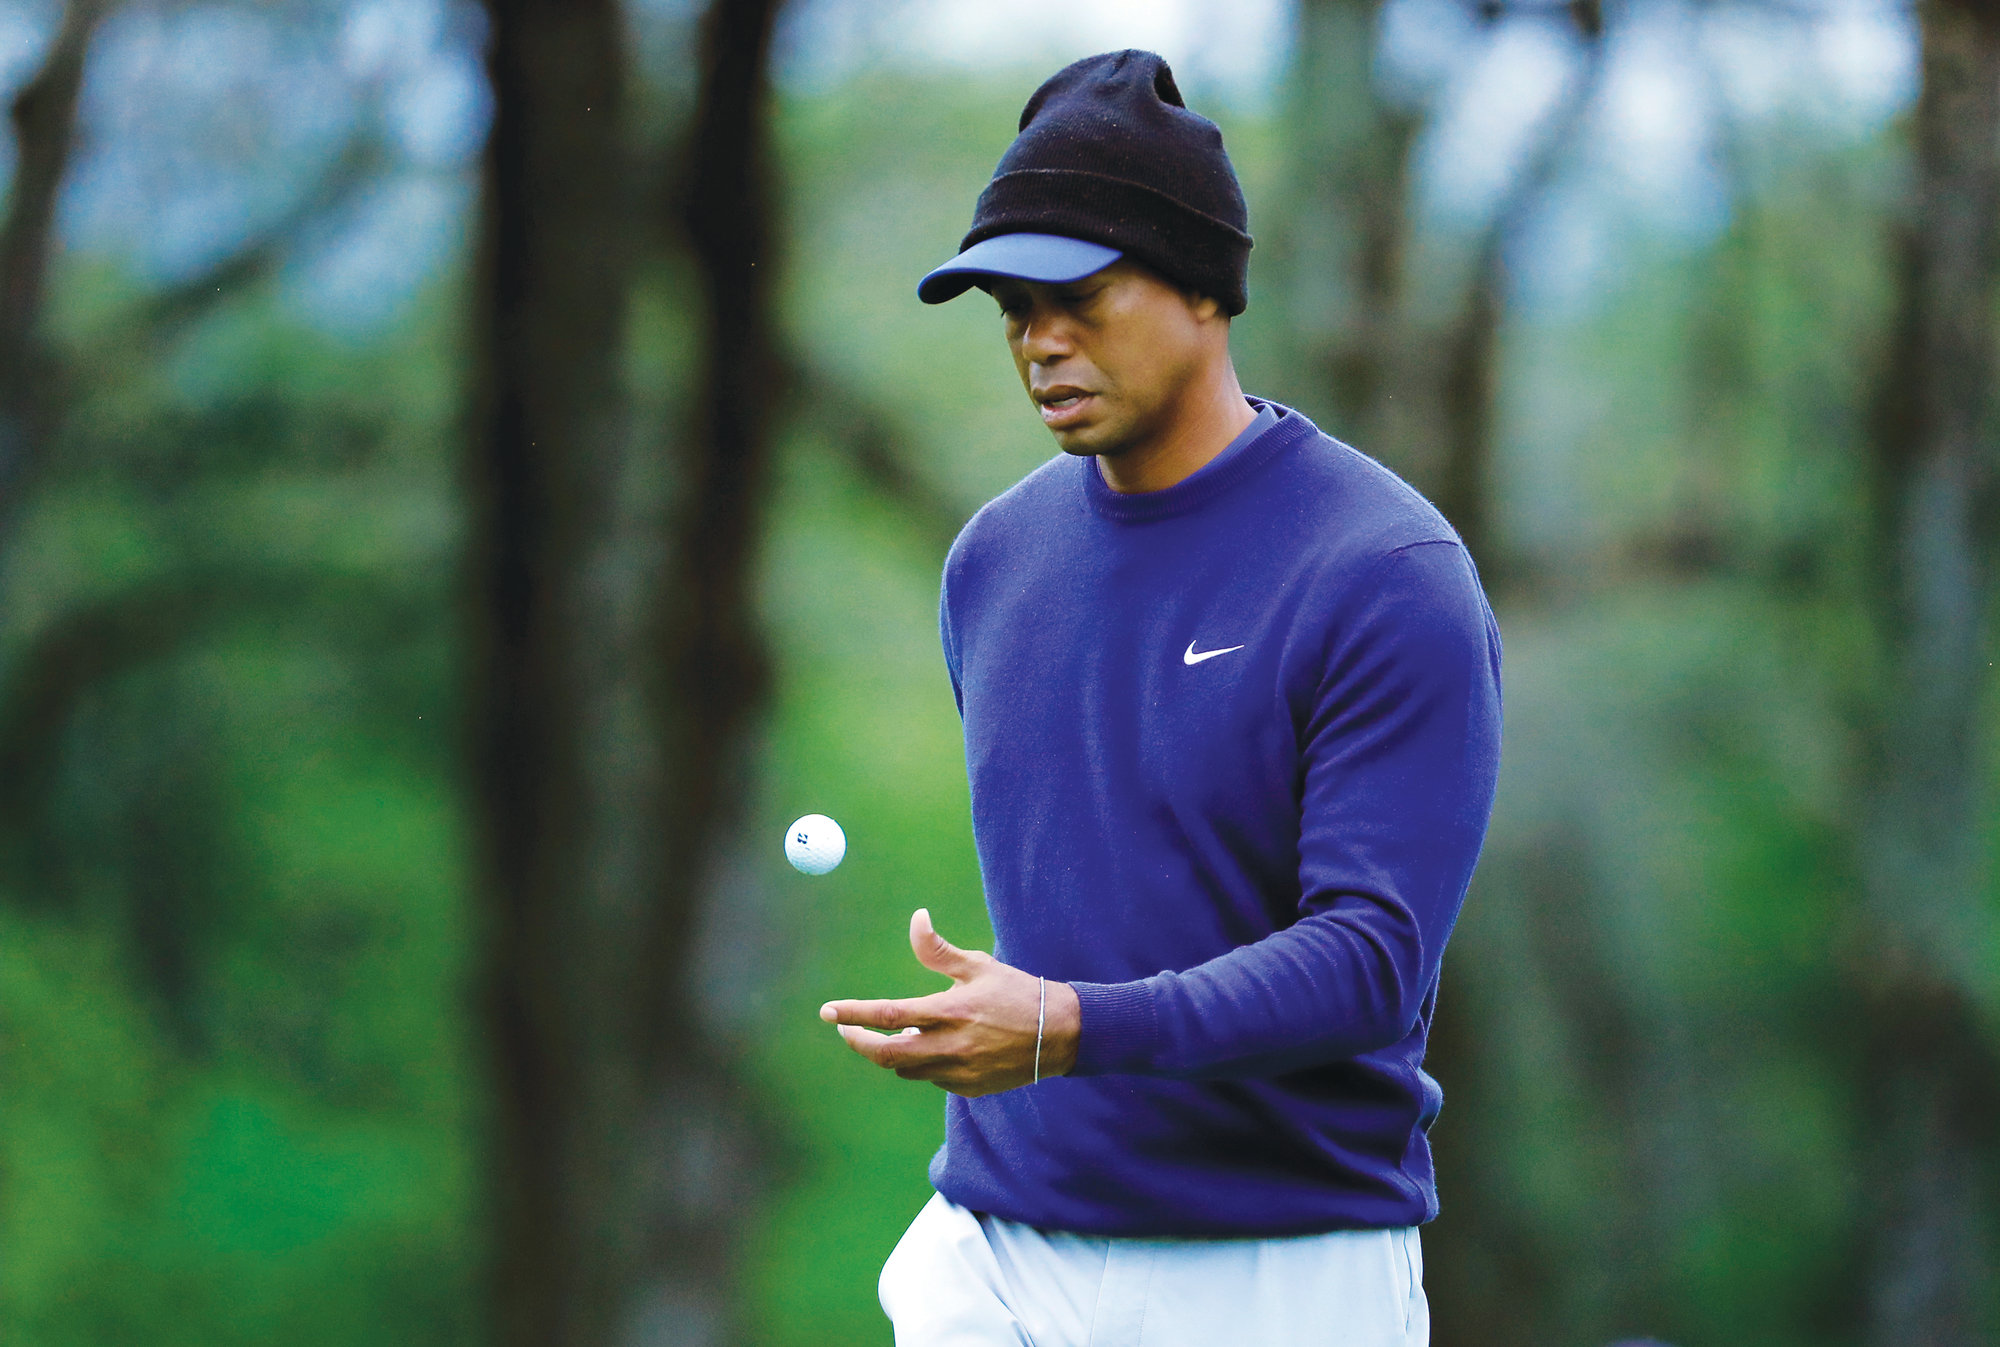 Tiger Woods will be going for his second straight major title when the PGA Championship begins on Thursday in Farmingdale, New York. Woods won The Masters last month.